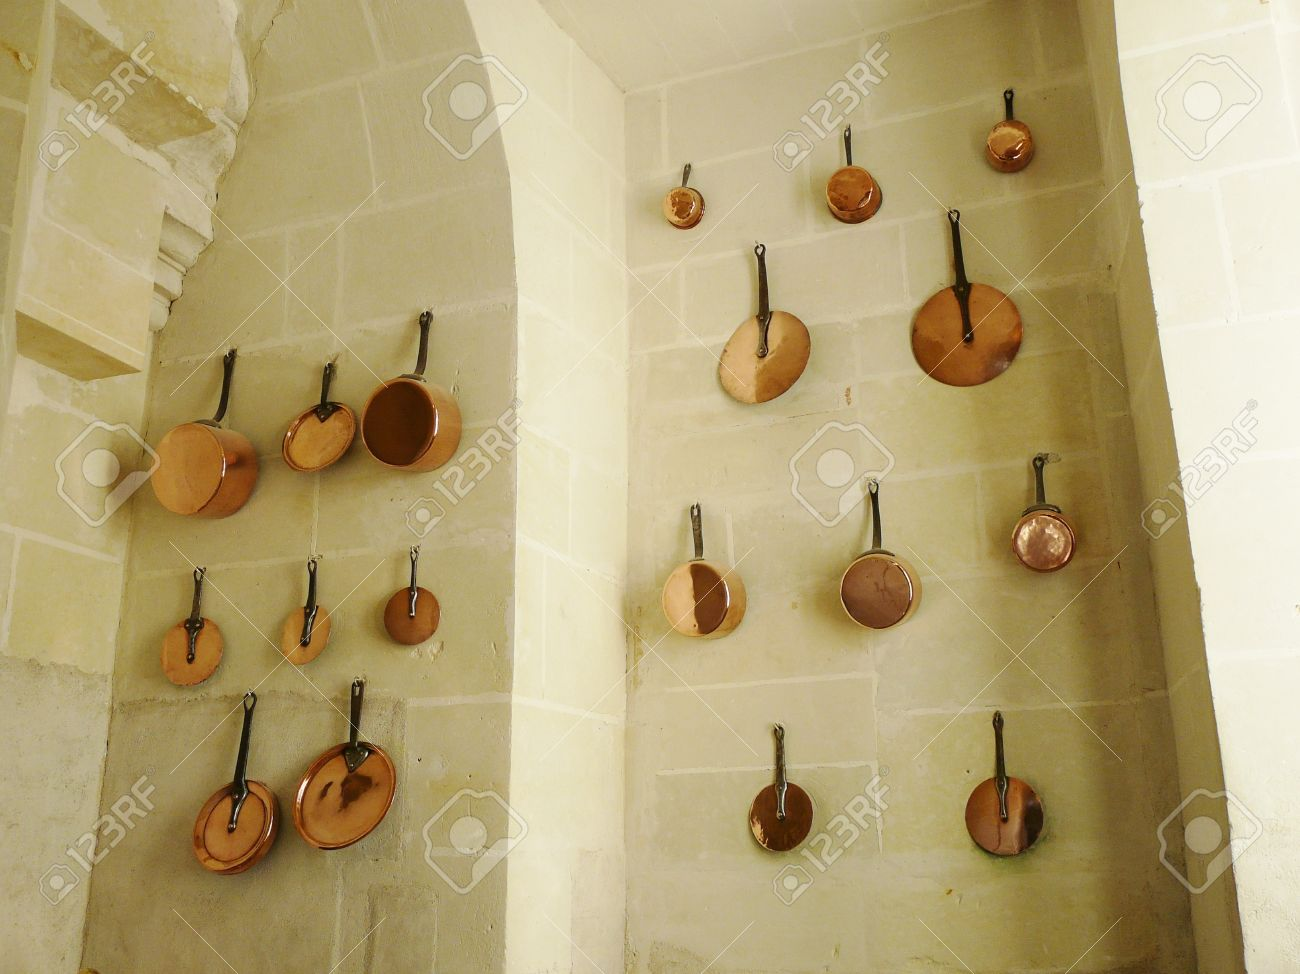 Shiny Copper Pots And Pans Hanging On The Wall Of A Medieval Stock Photo Picture And Royalty Free Image Image 11114955